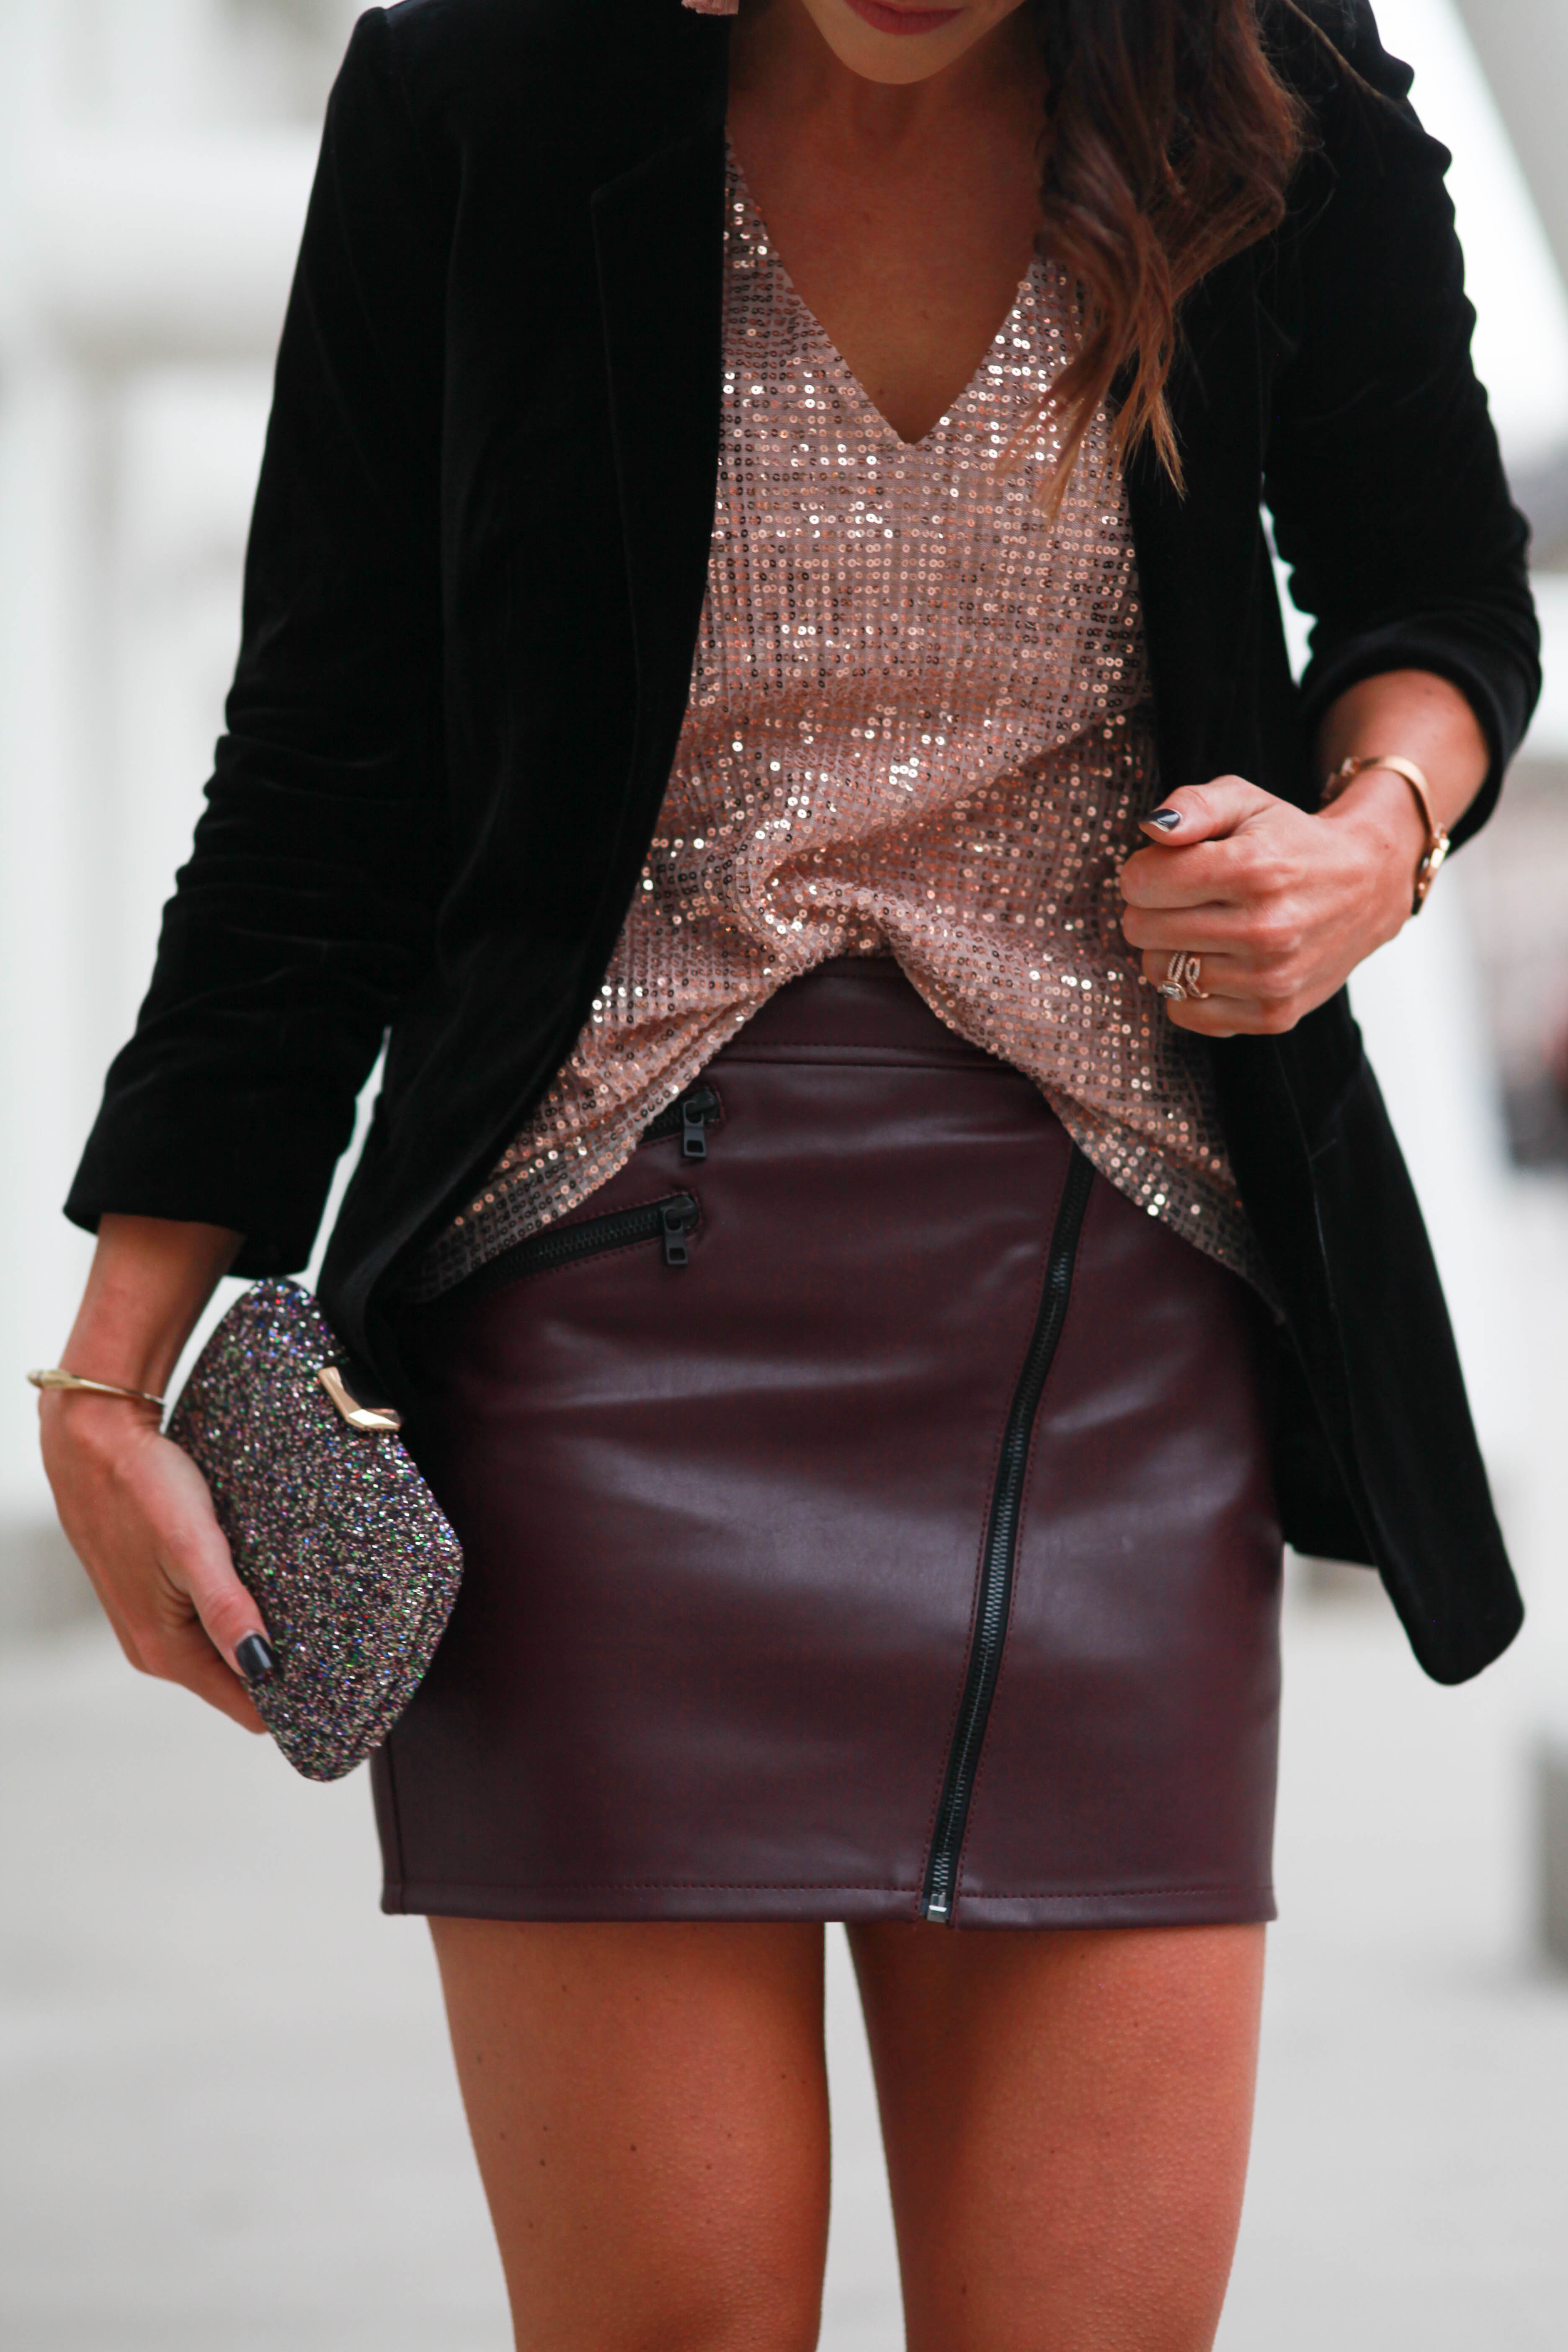 PaleOMG Fashion: Sequins Never Go Out of Style